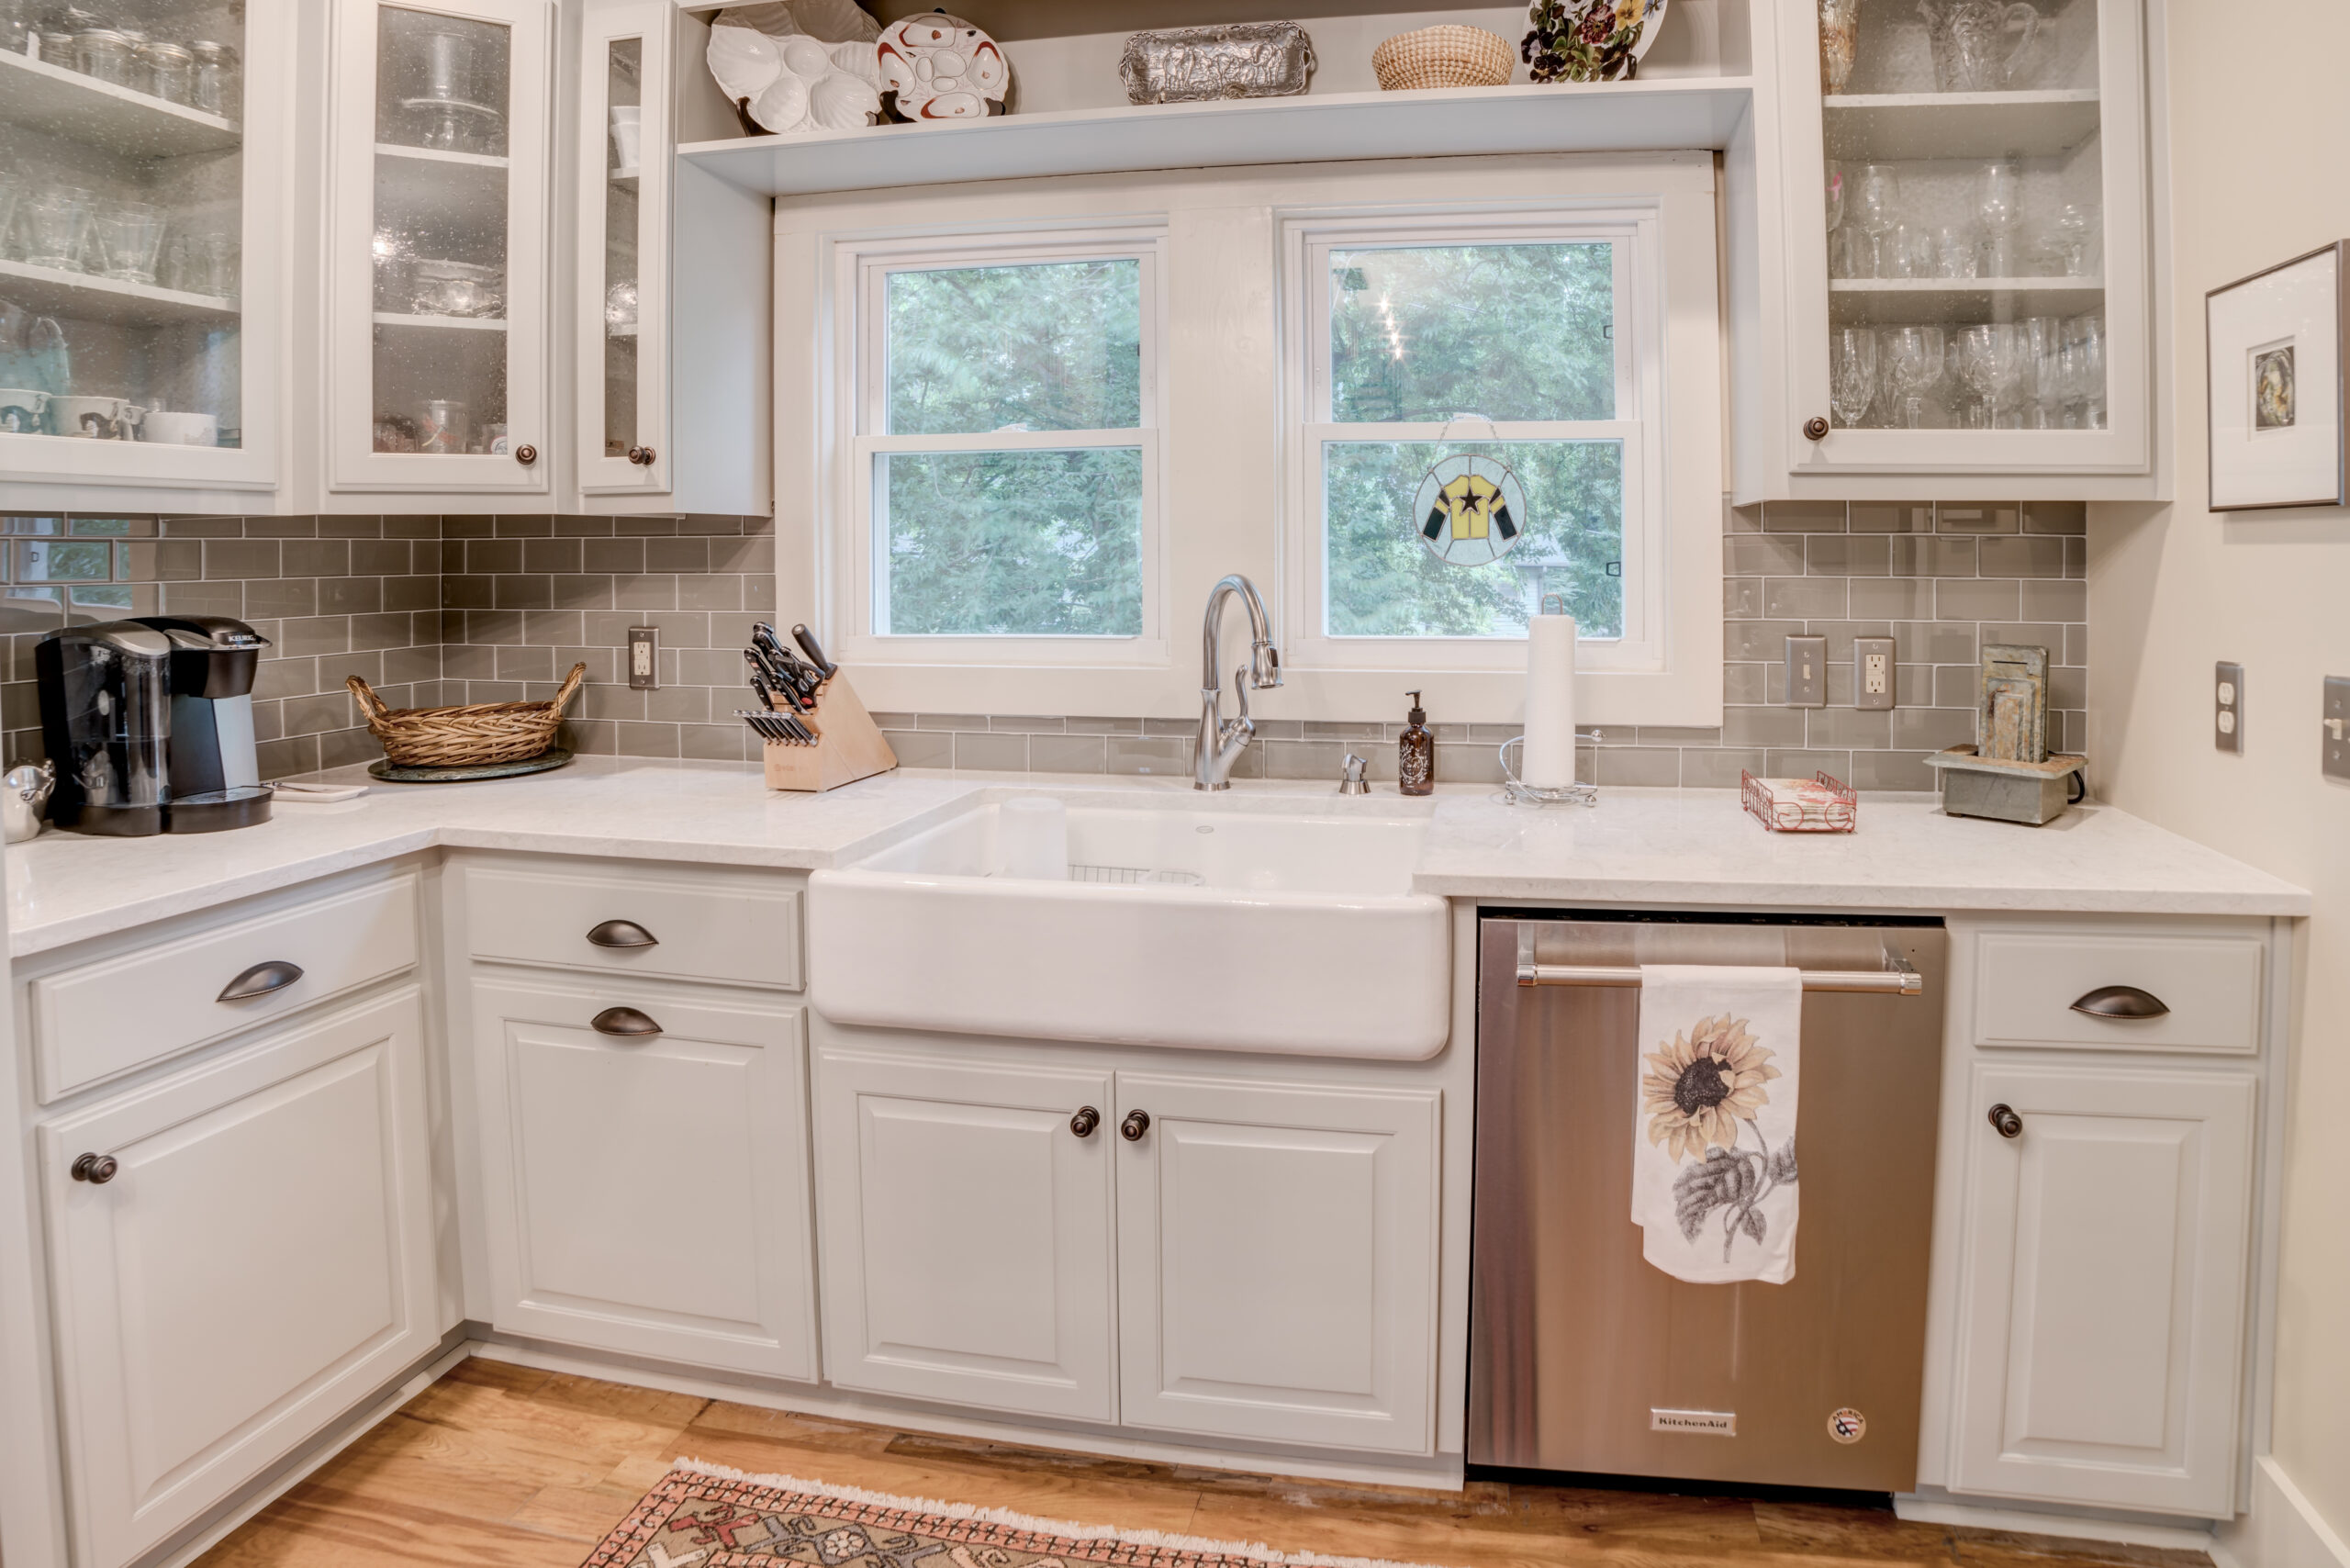 Tryon Builders Historic Carter Brown home renovation kitchen 3 1